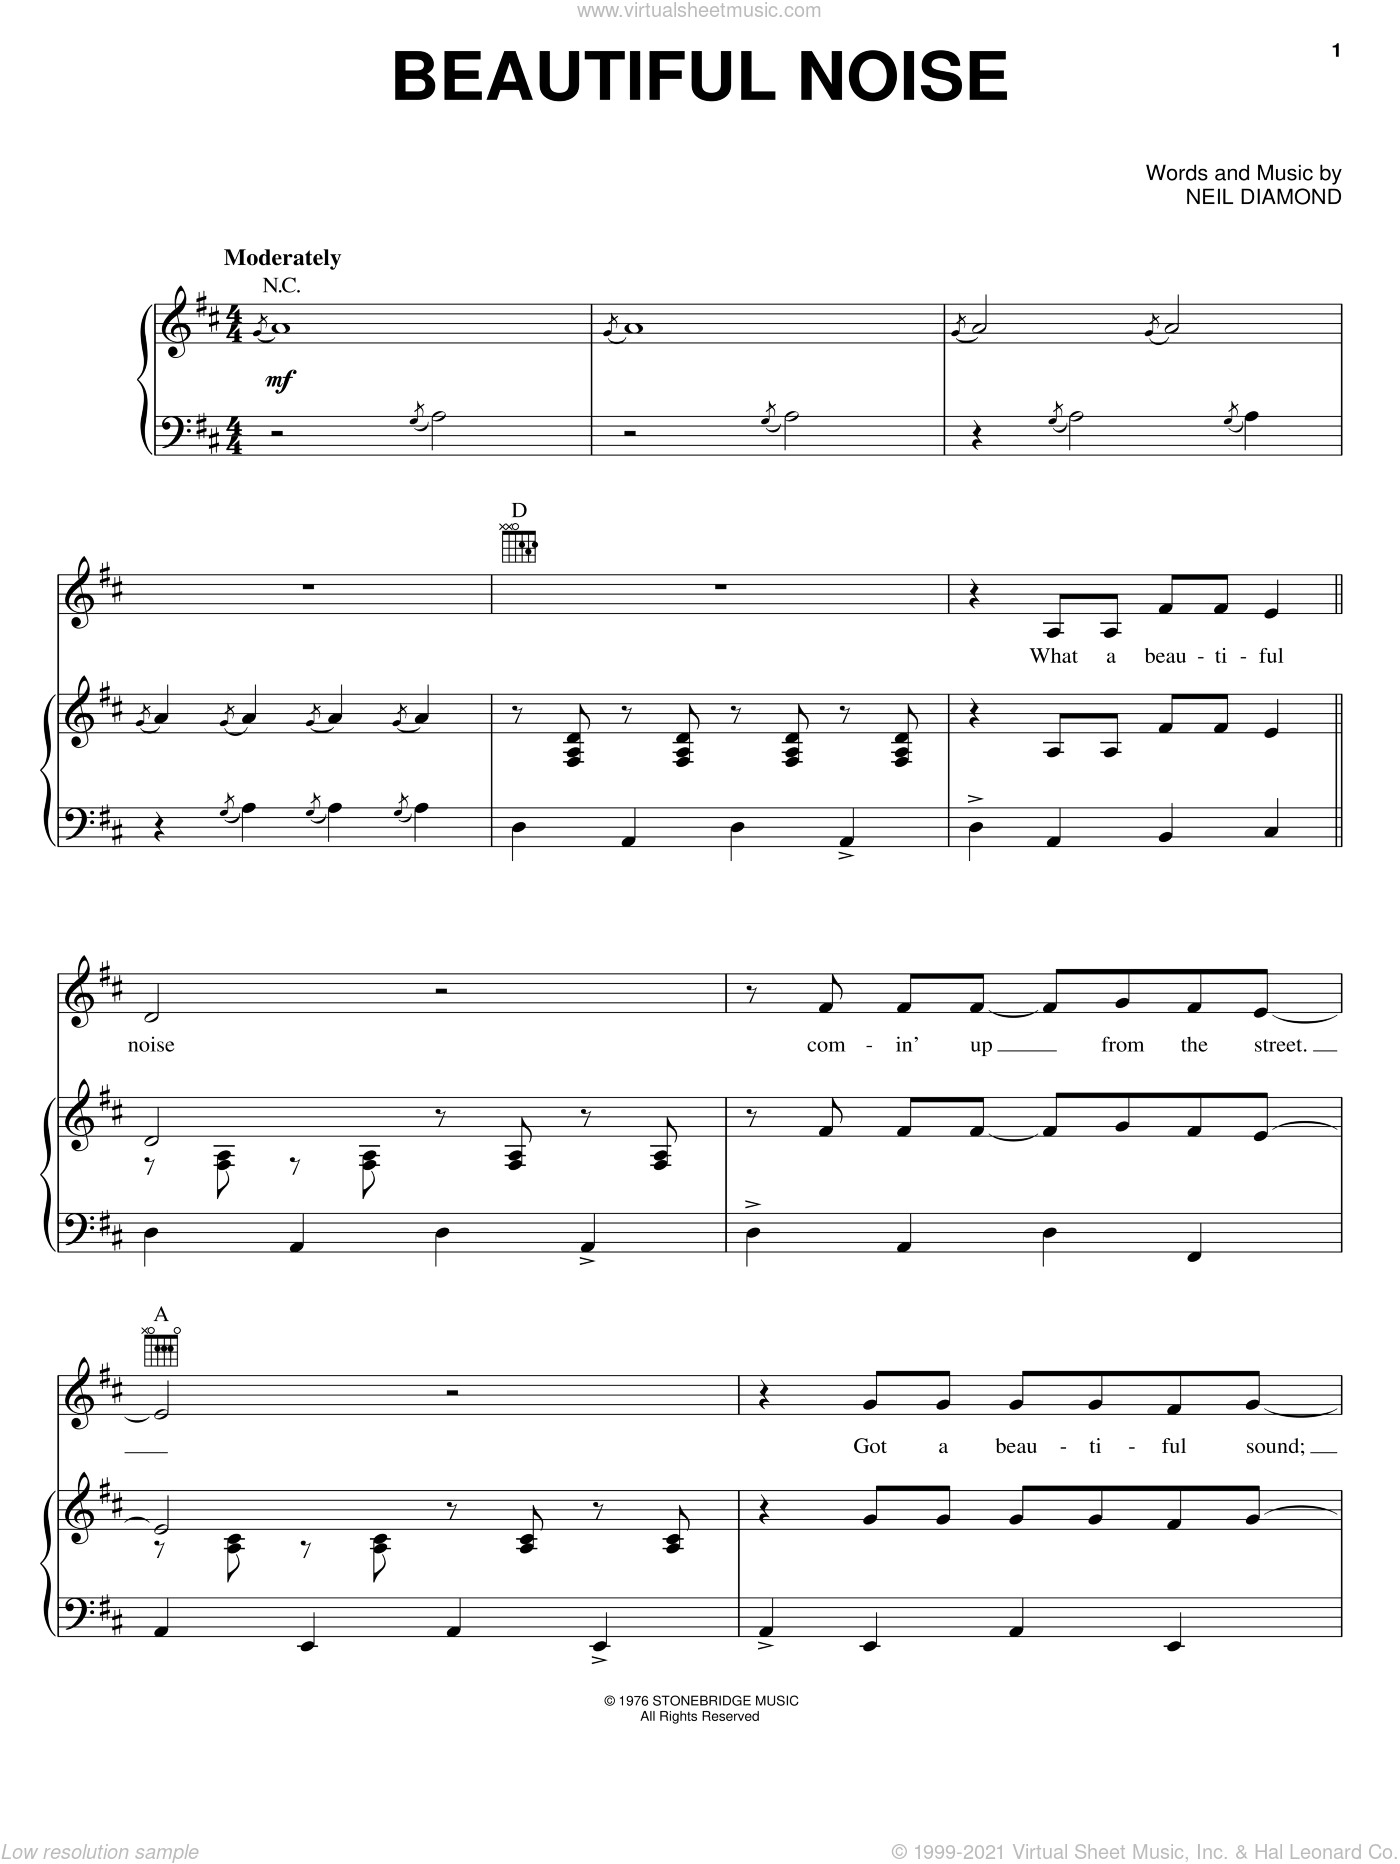 Beautiful Noise sheet music for voice, piano or guitar by Neil Diamond, intermediate skill level